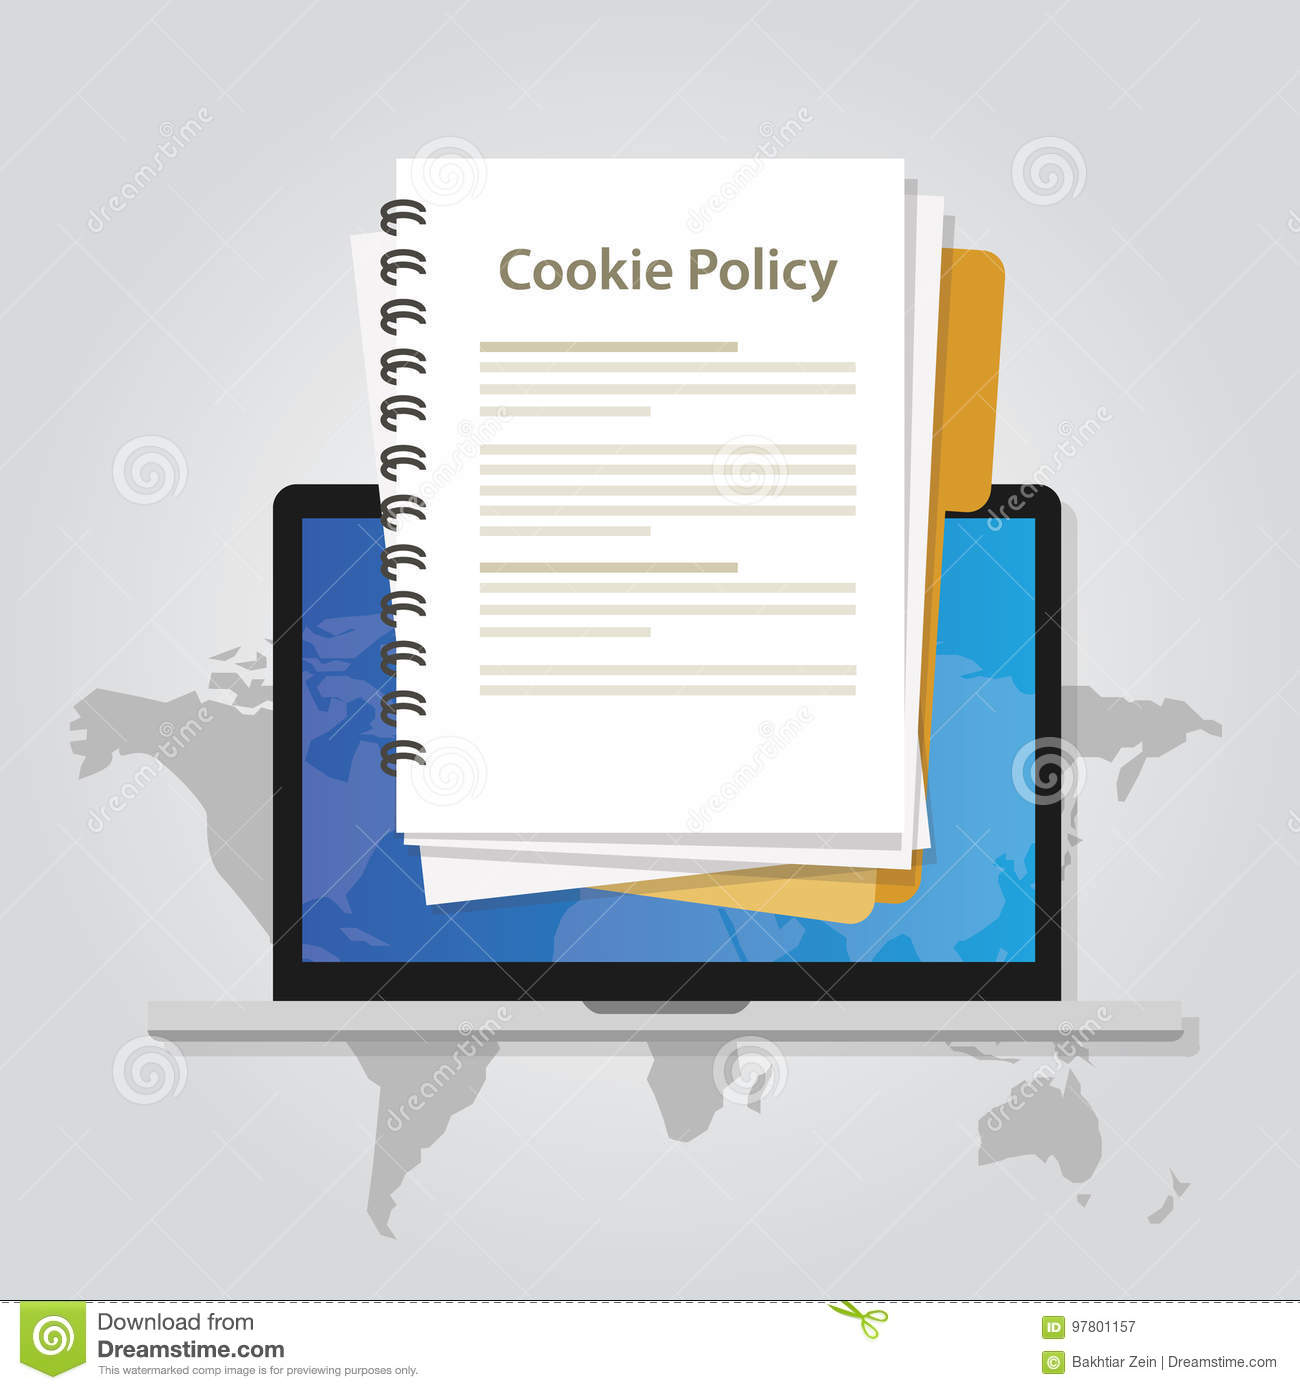 Cookie policy information privacy in website collecting data from visitor